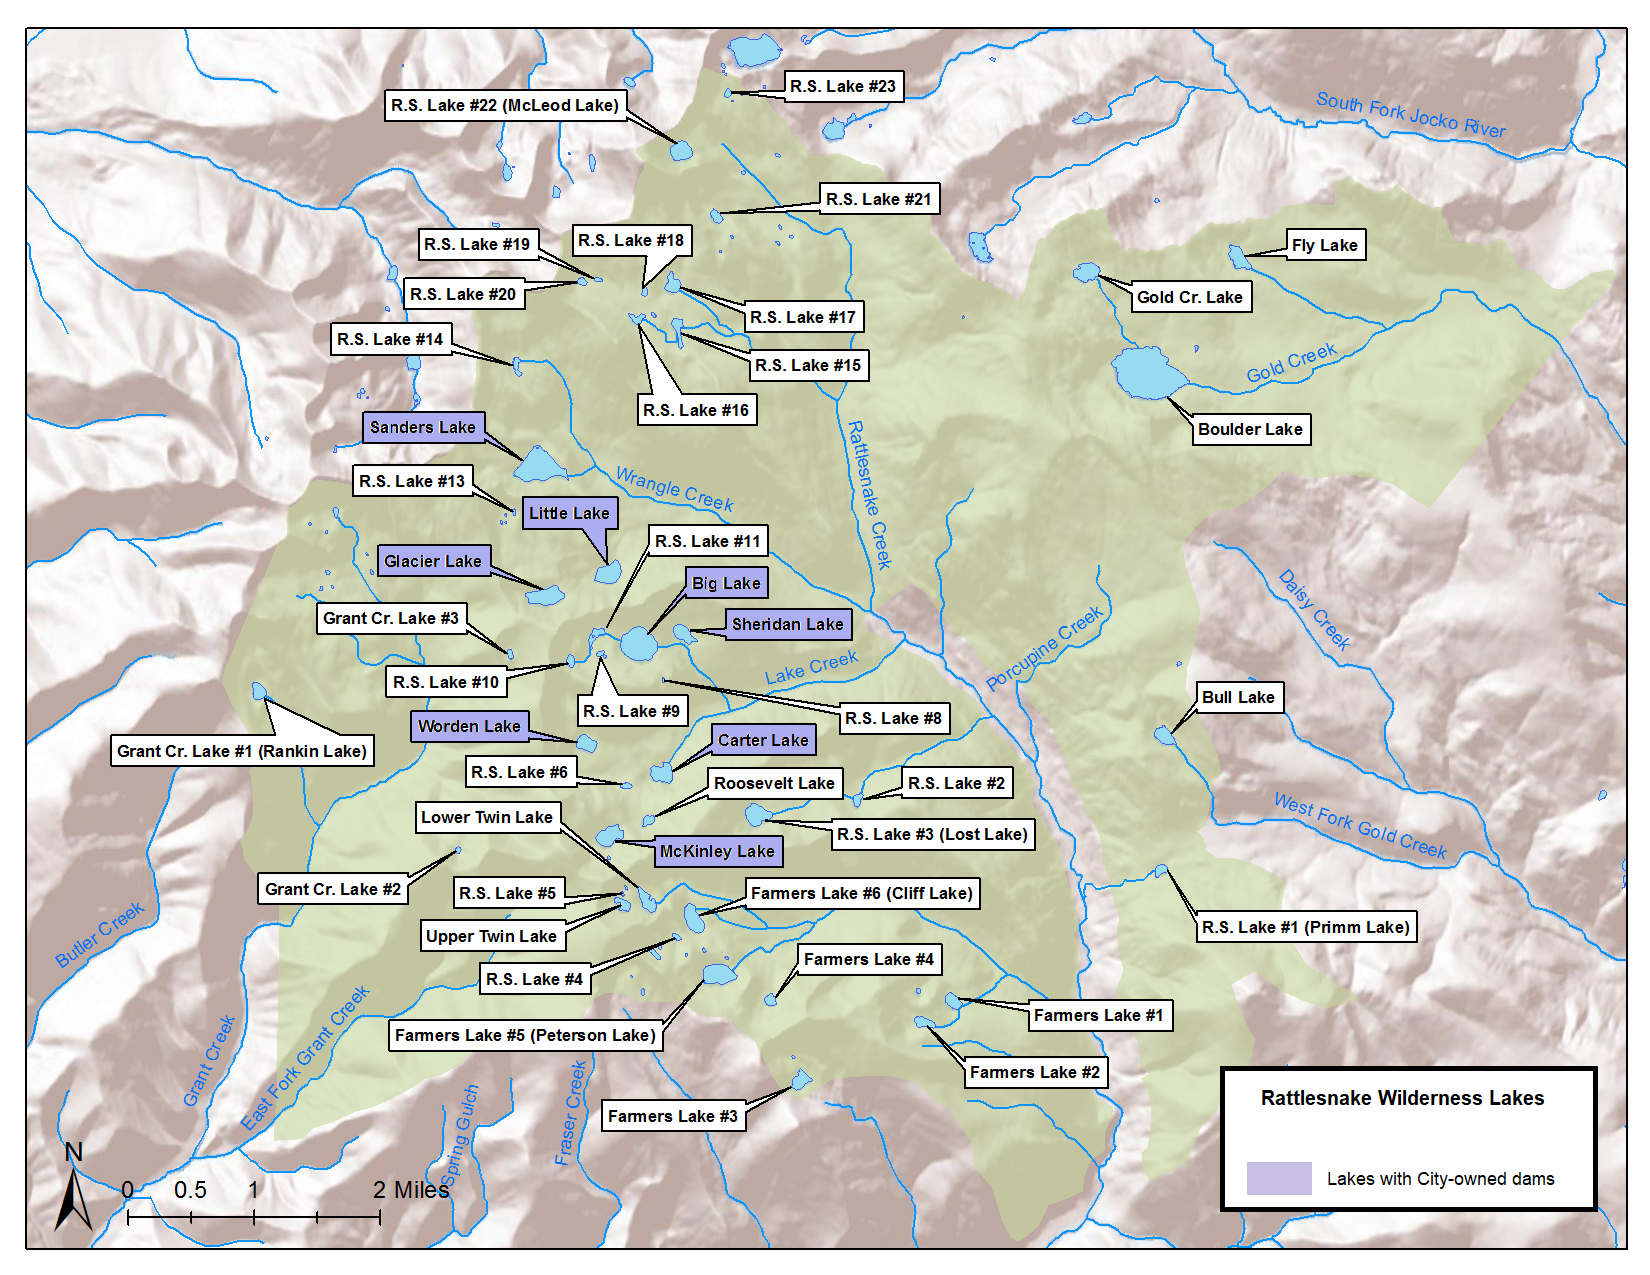 U.S. Forest Service map of all lakes in Rattlesnake Wilderness area.